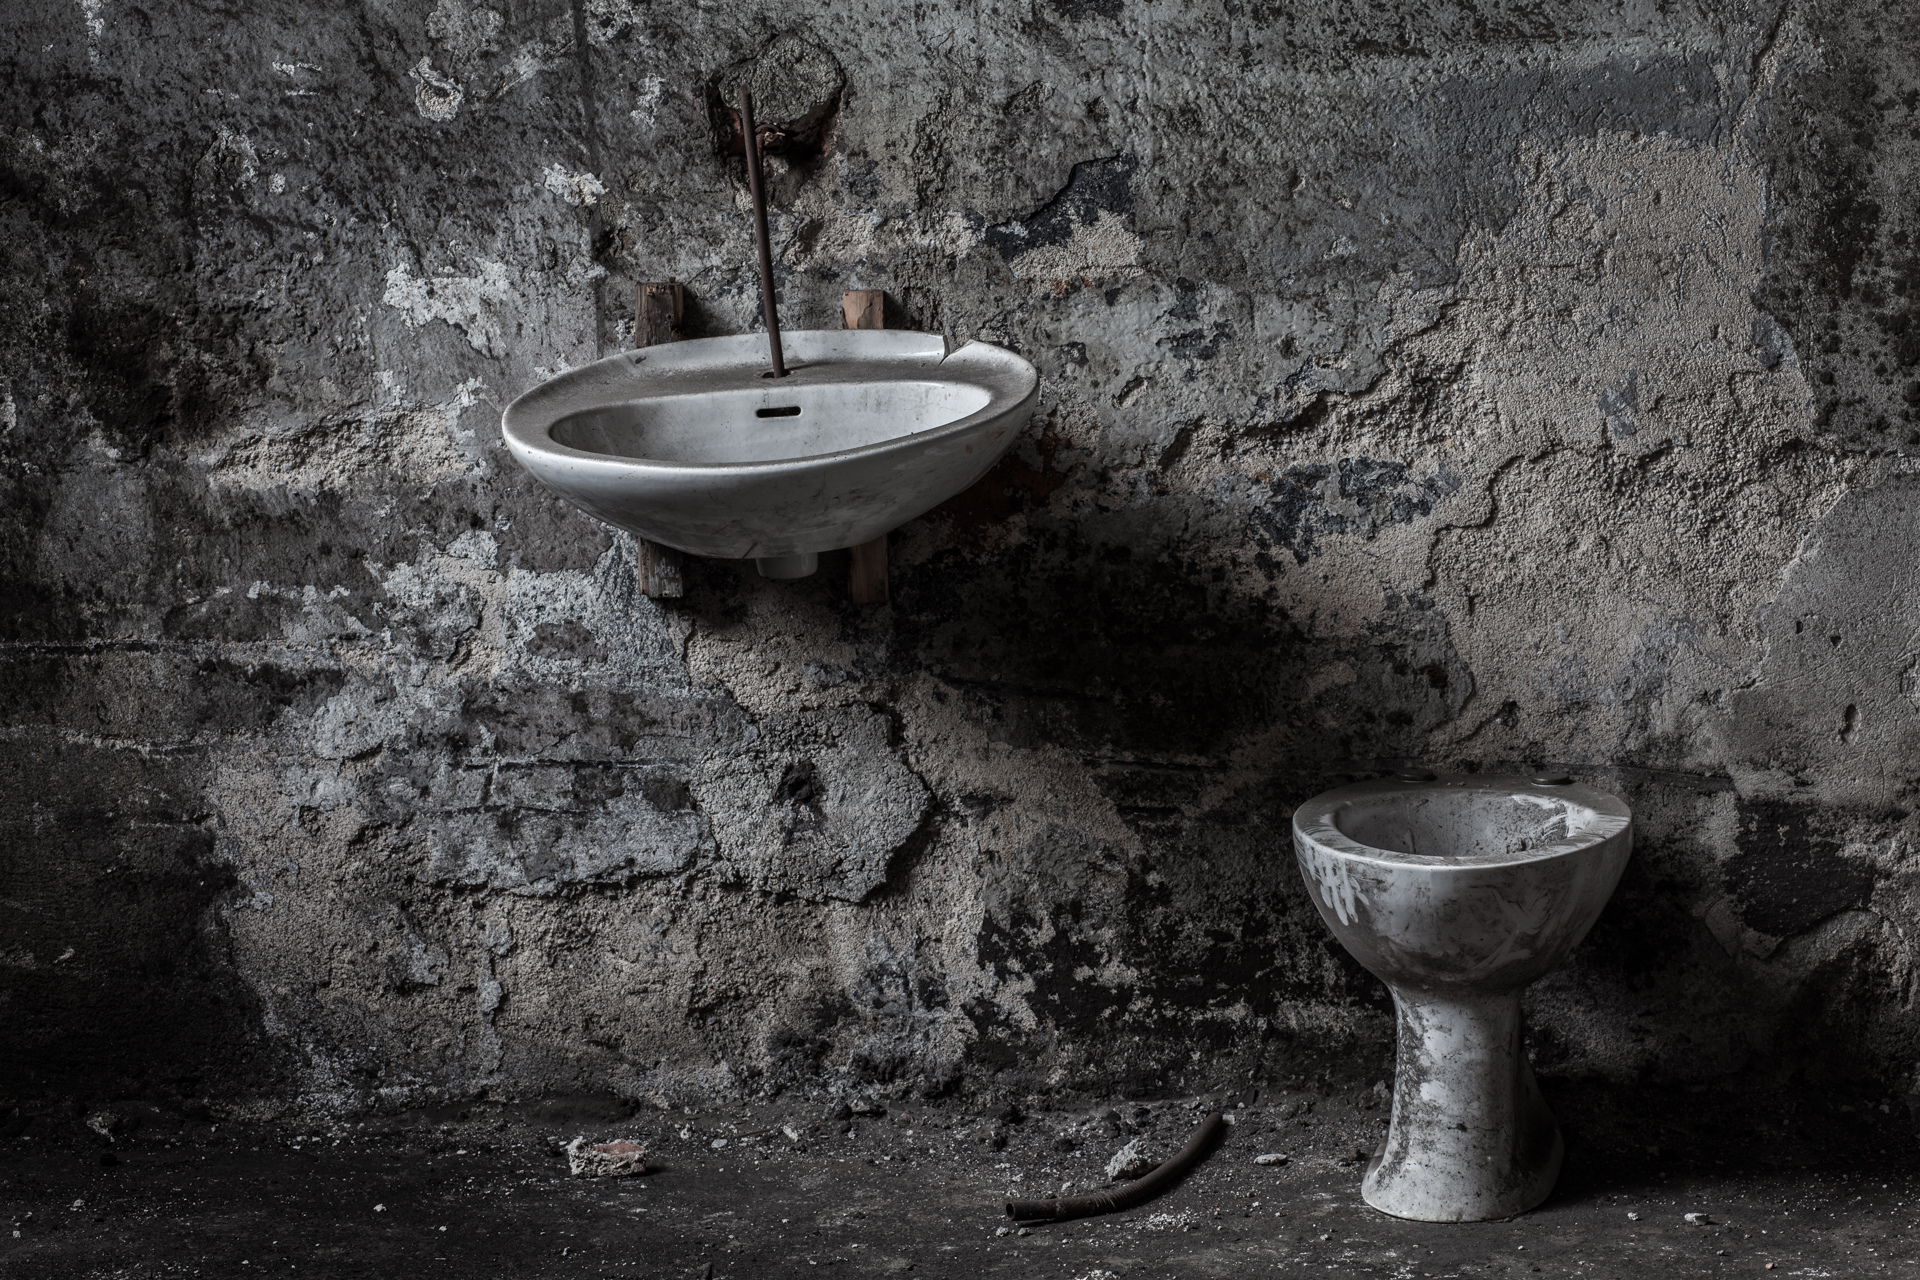 Urban Exploration - Railway Mortuary - Sanitation